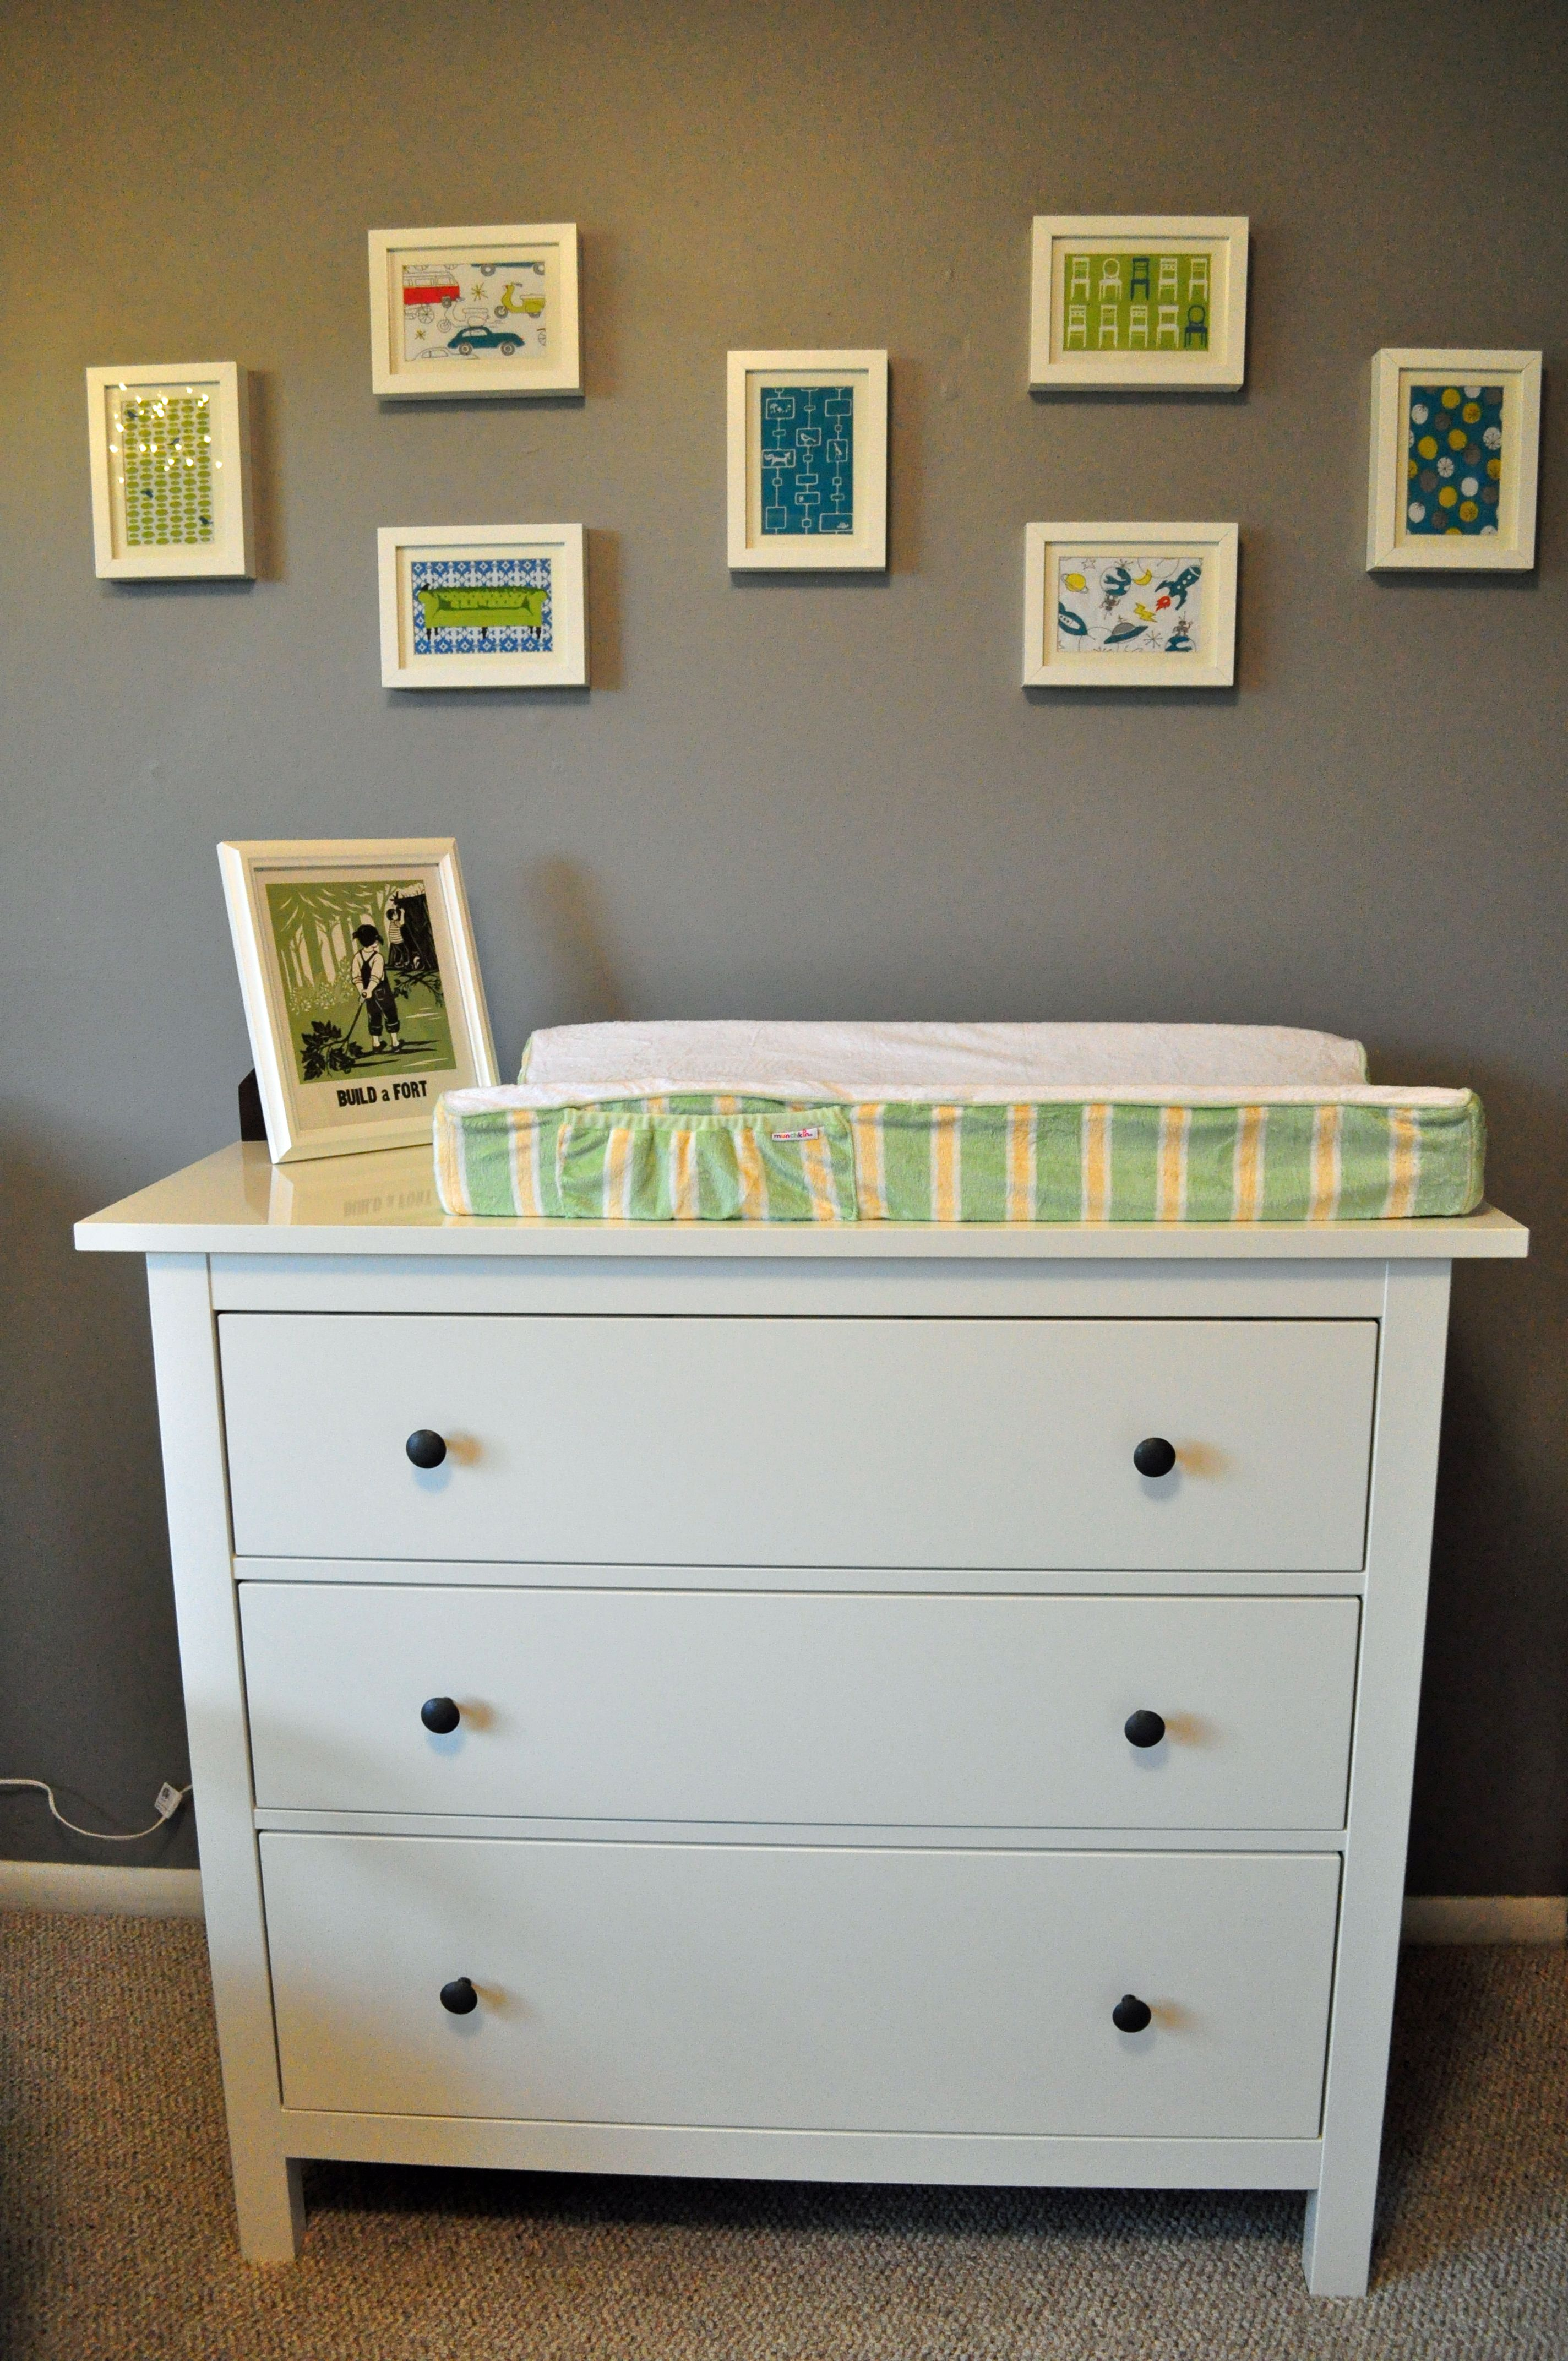 for sale dressers davinci double dresser baby drawer signature